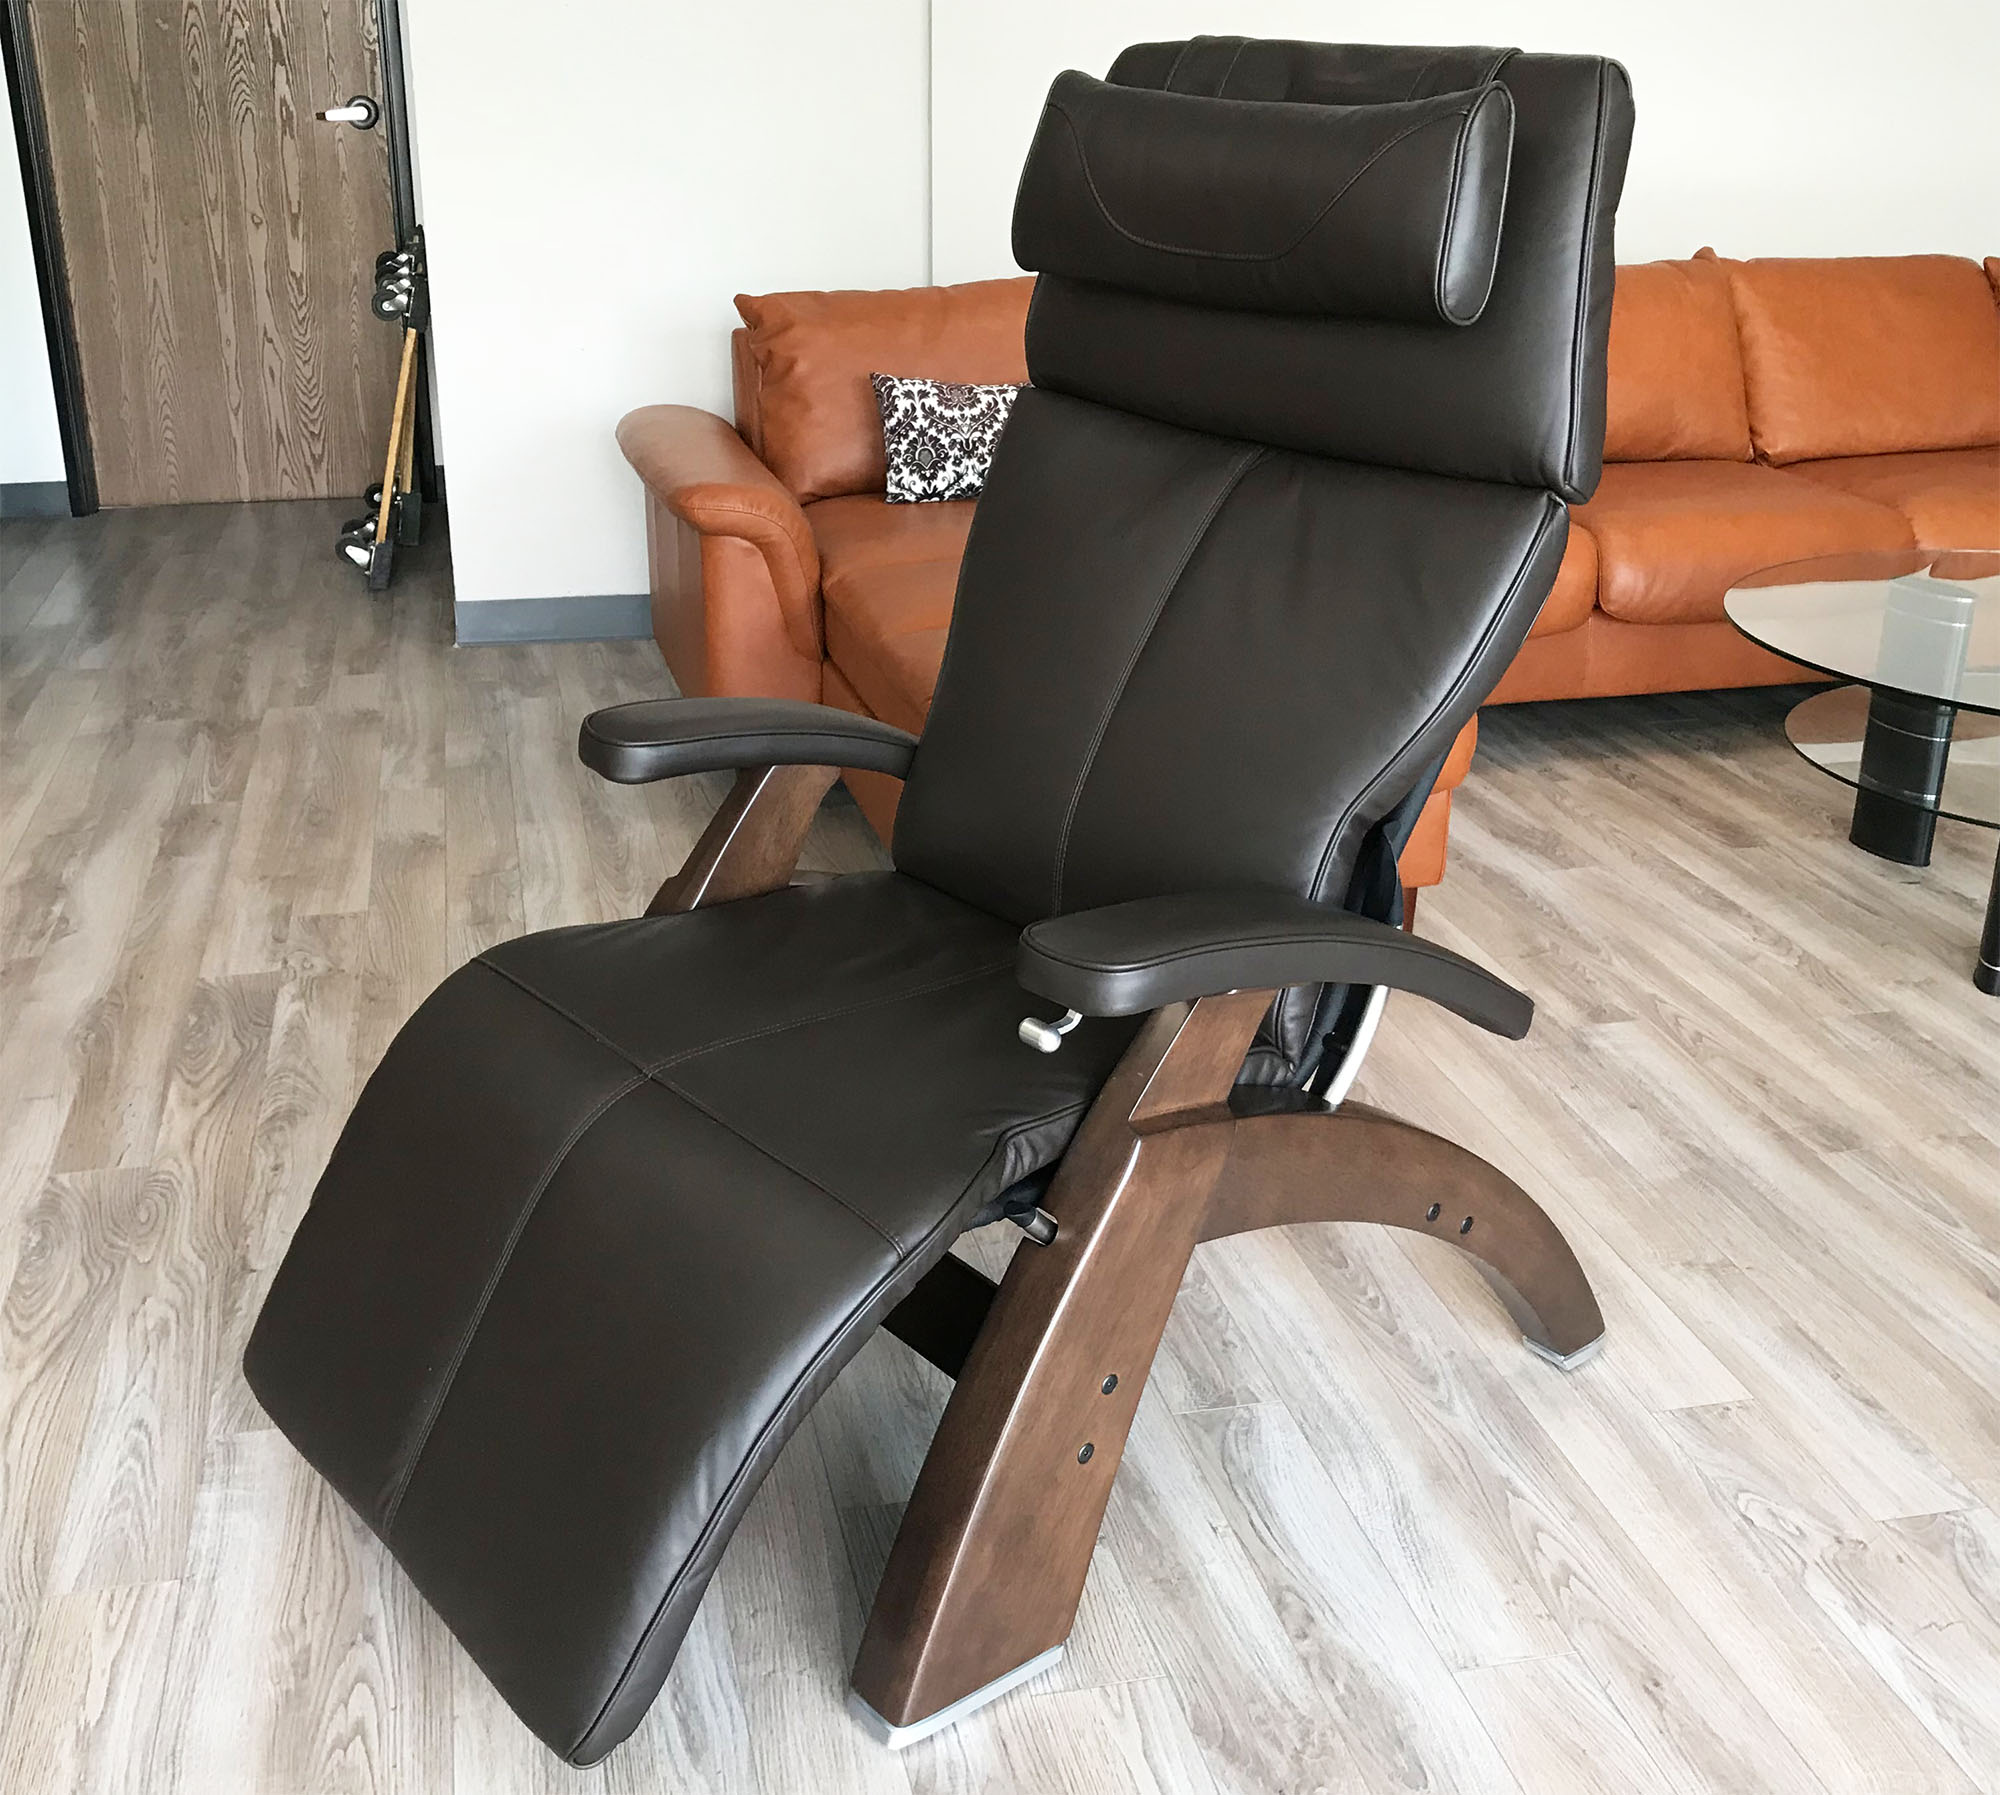 oversized a cha ideas is recliner what furniture perfect stokke gravity stand for human touch home black leather and zero seat with wood chair